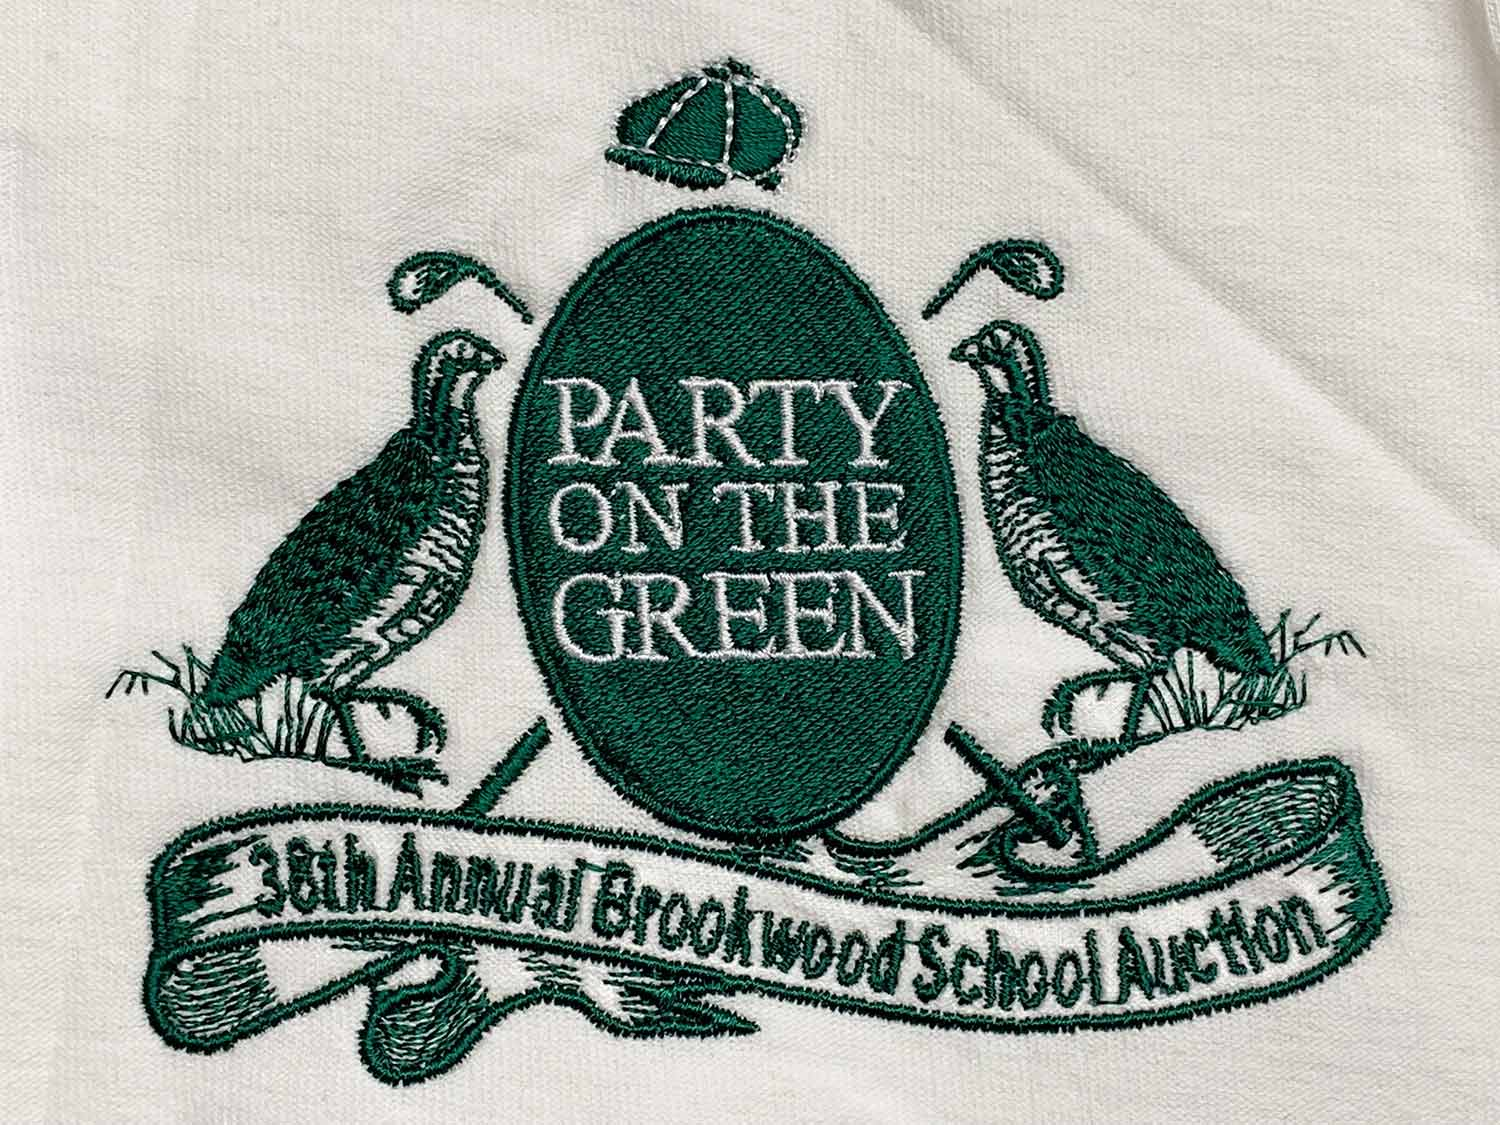 KYC_PARTY-ON-THE-GREEN-ANNUAL-BROOKWOOD-SCHOOL-AUCTION_web.jpg